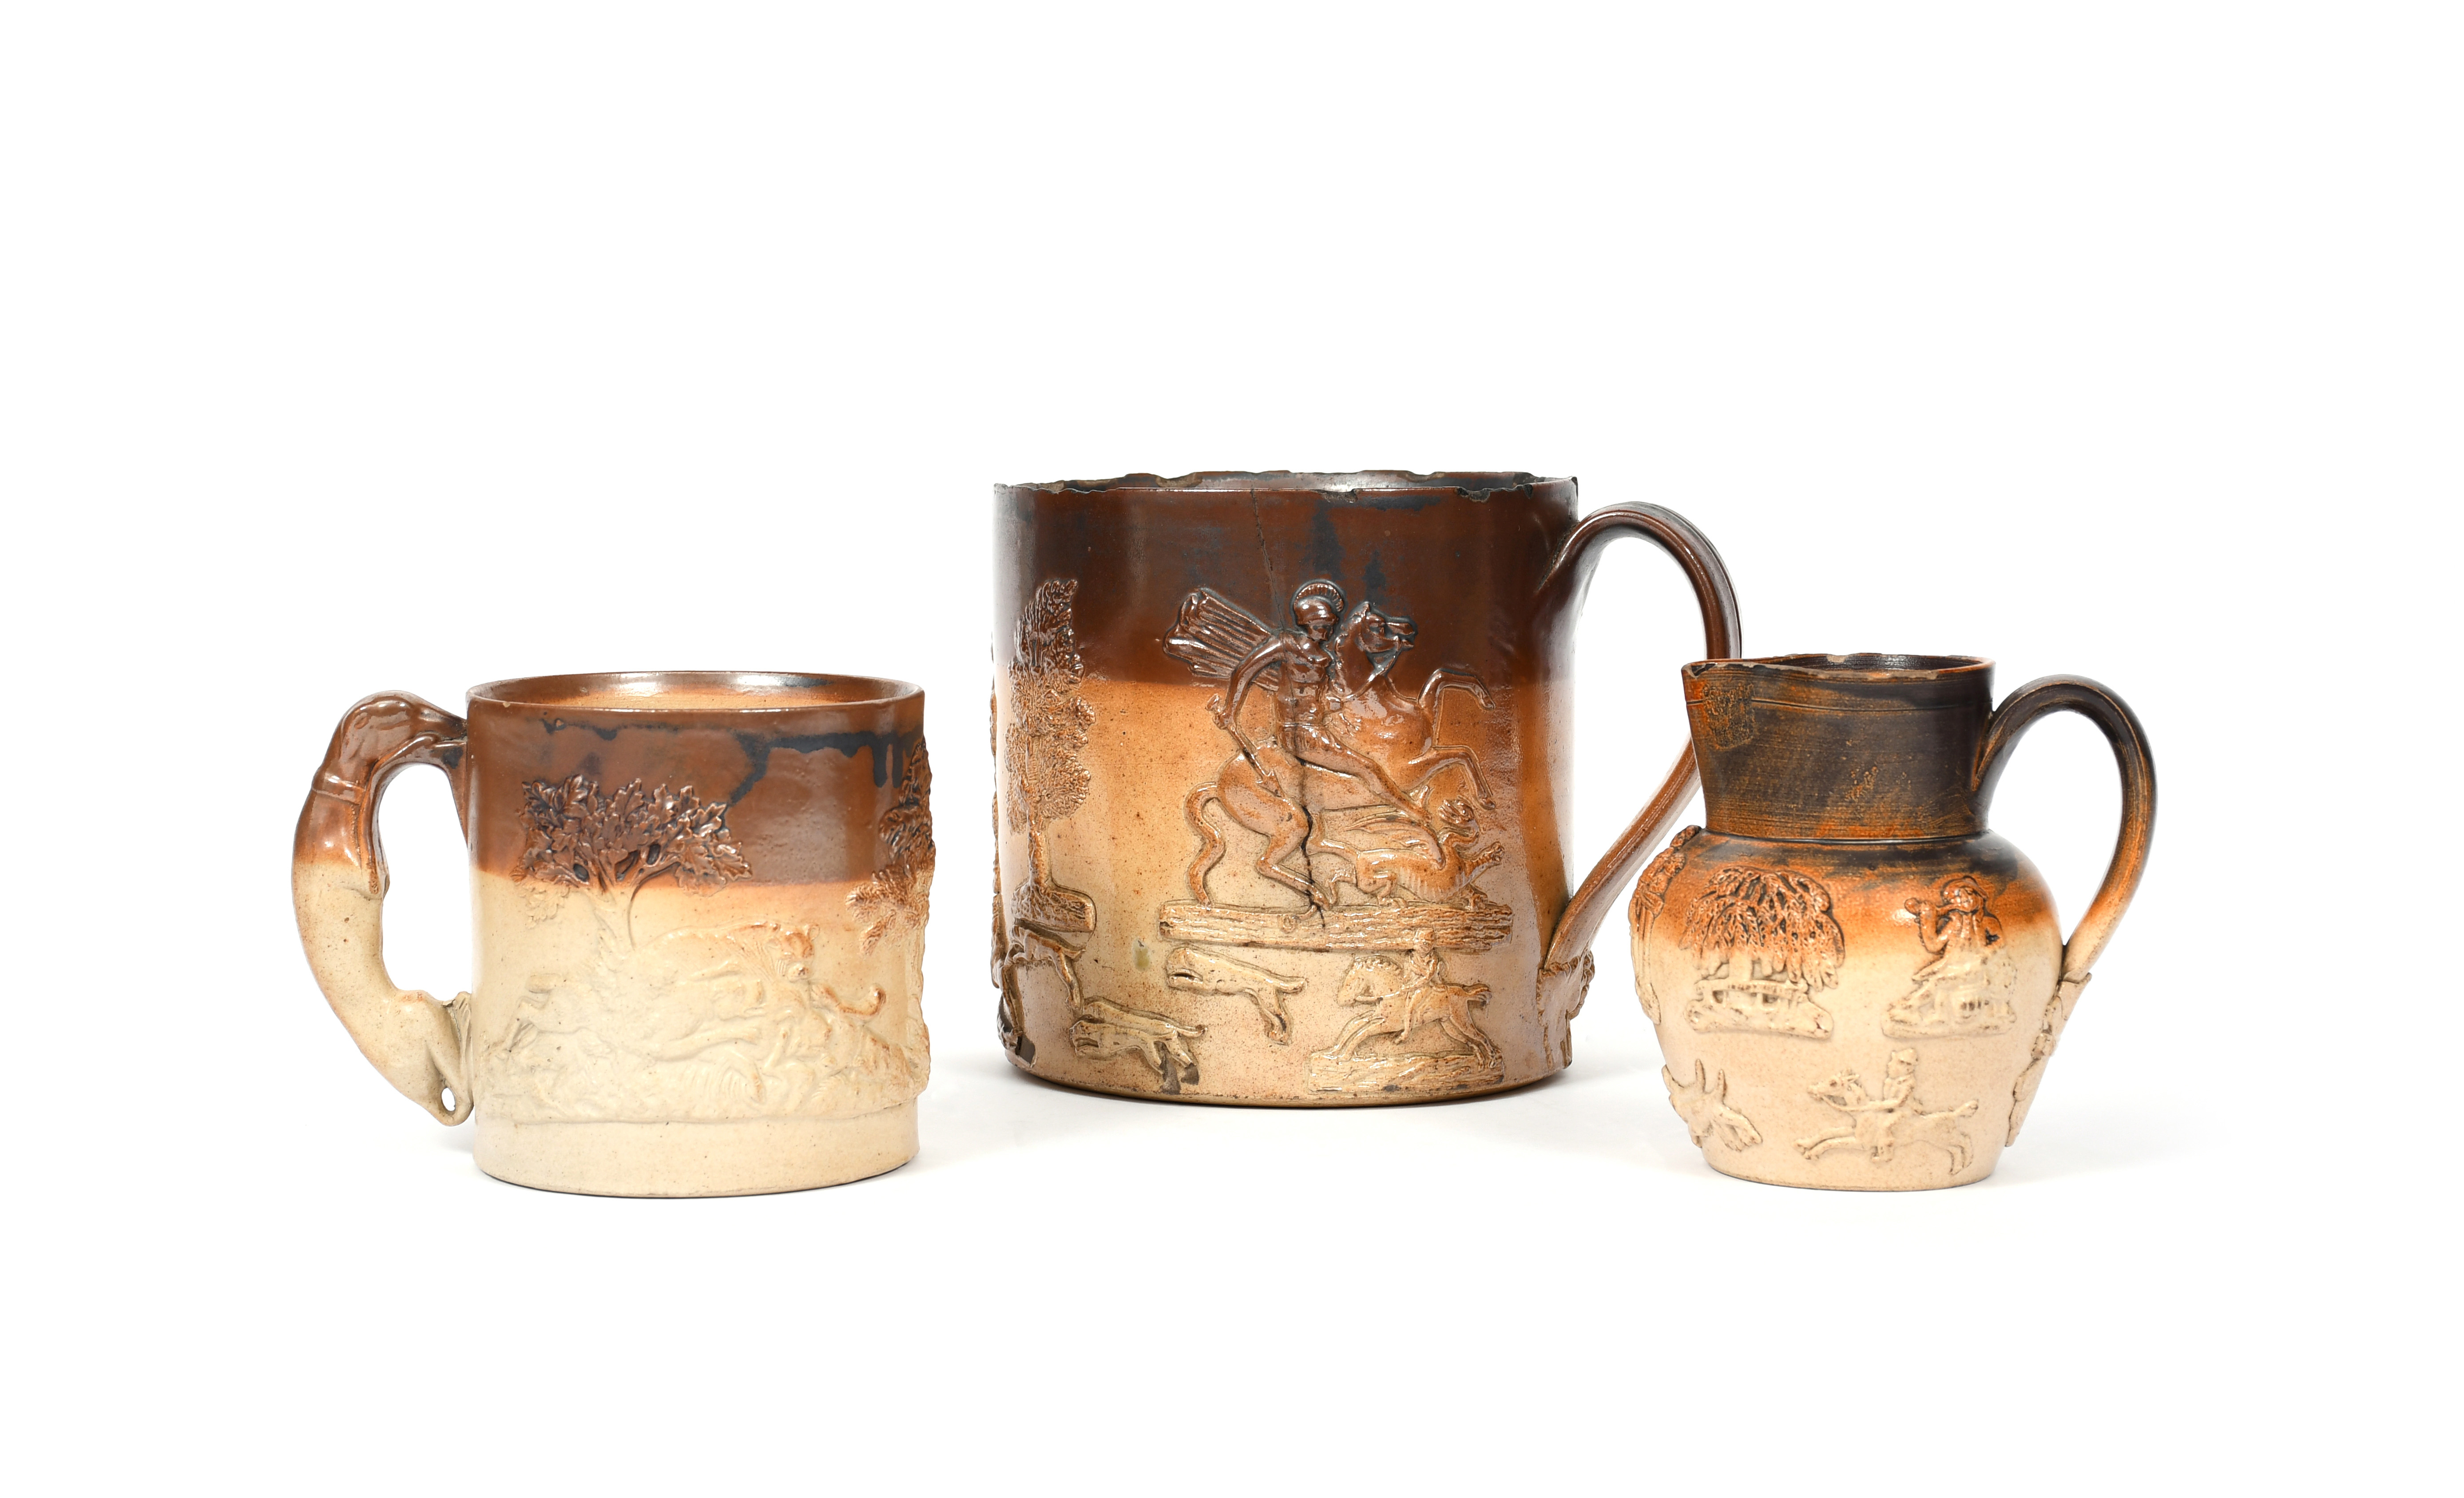 Two brown stoneware mugs and a jug 19th century, the largest mug of generous form and sprigged